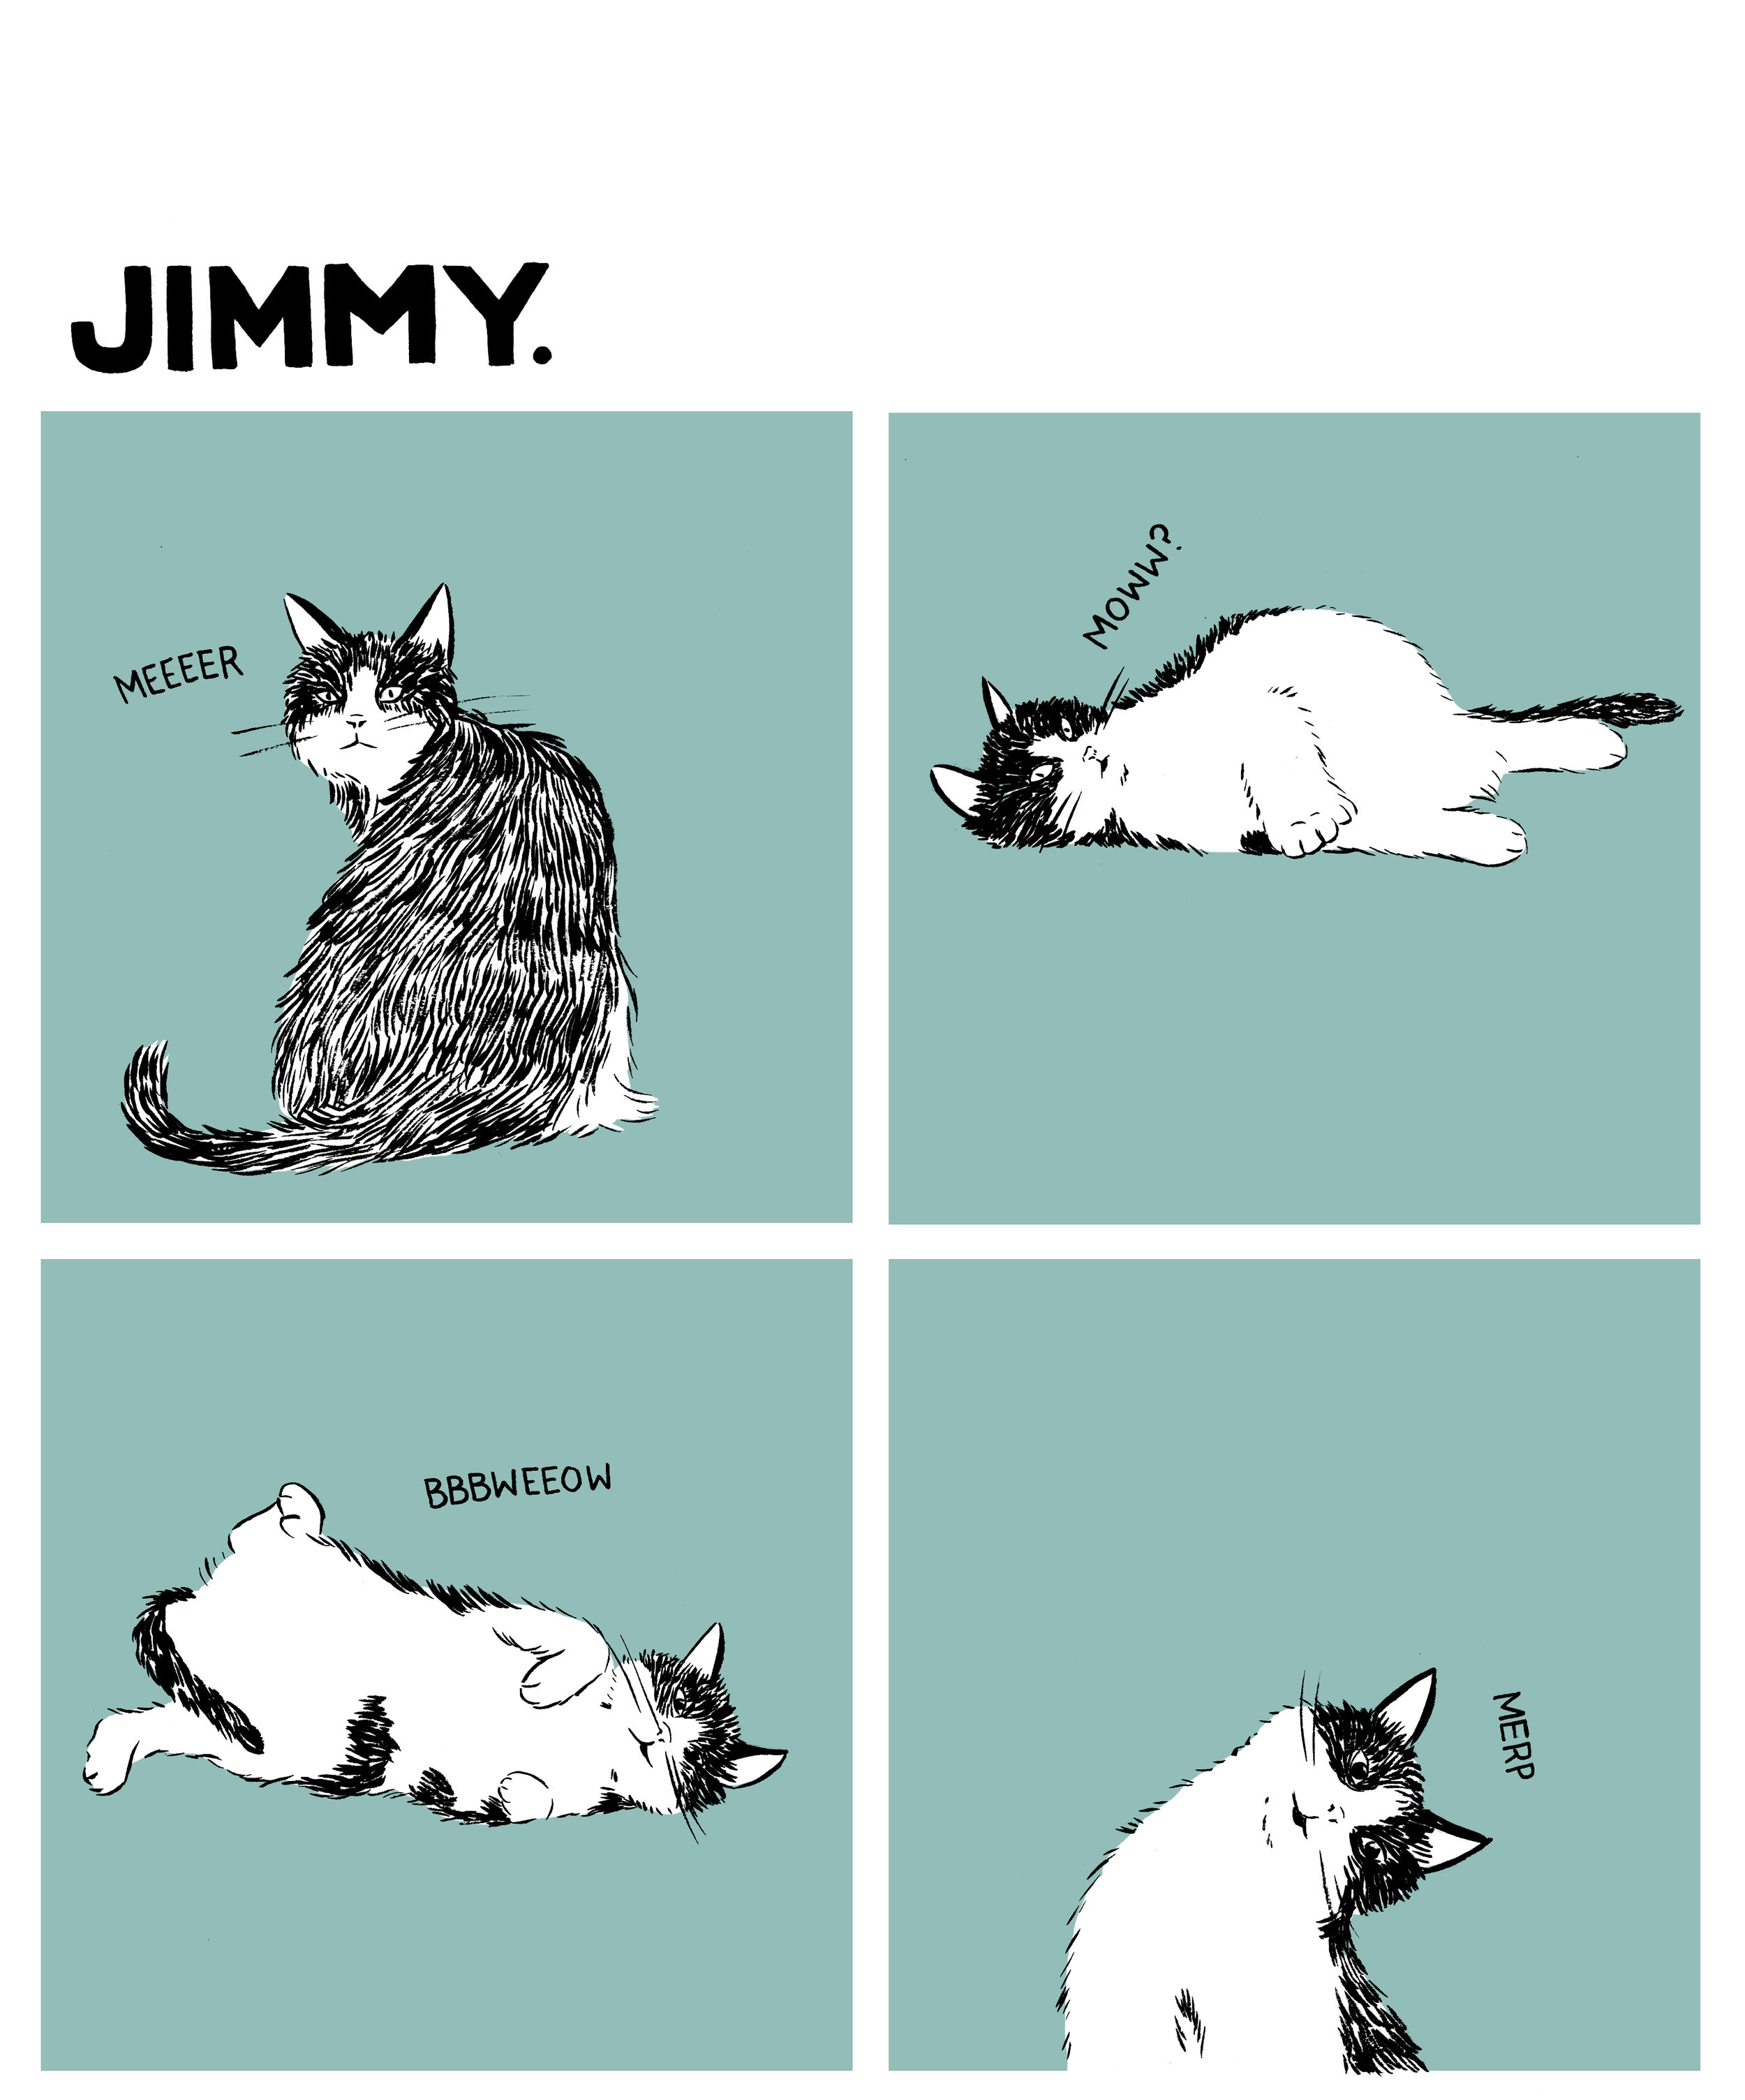 jimmy1.jpeg